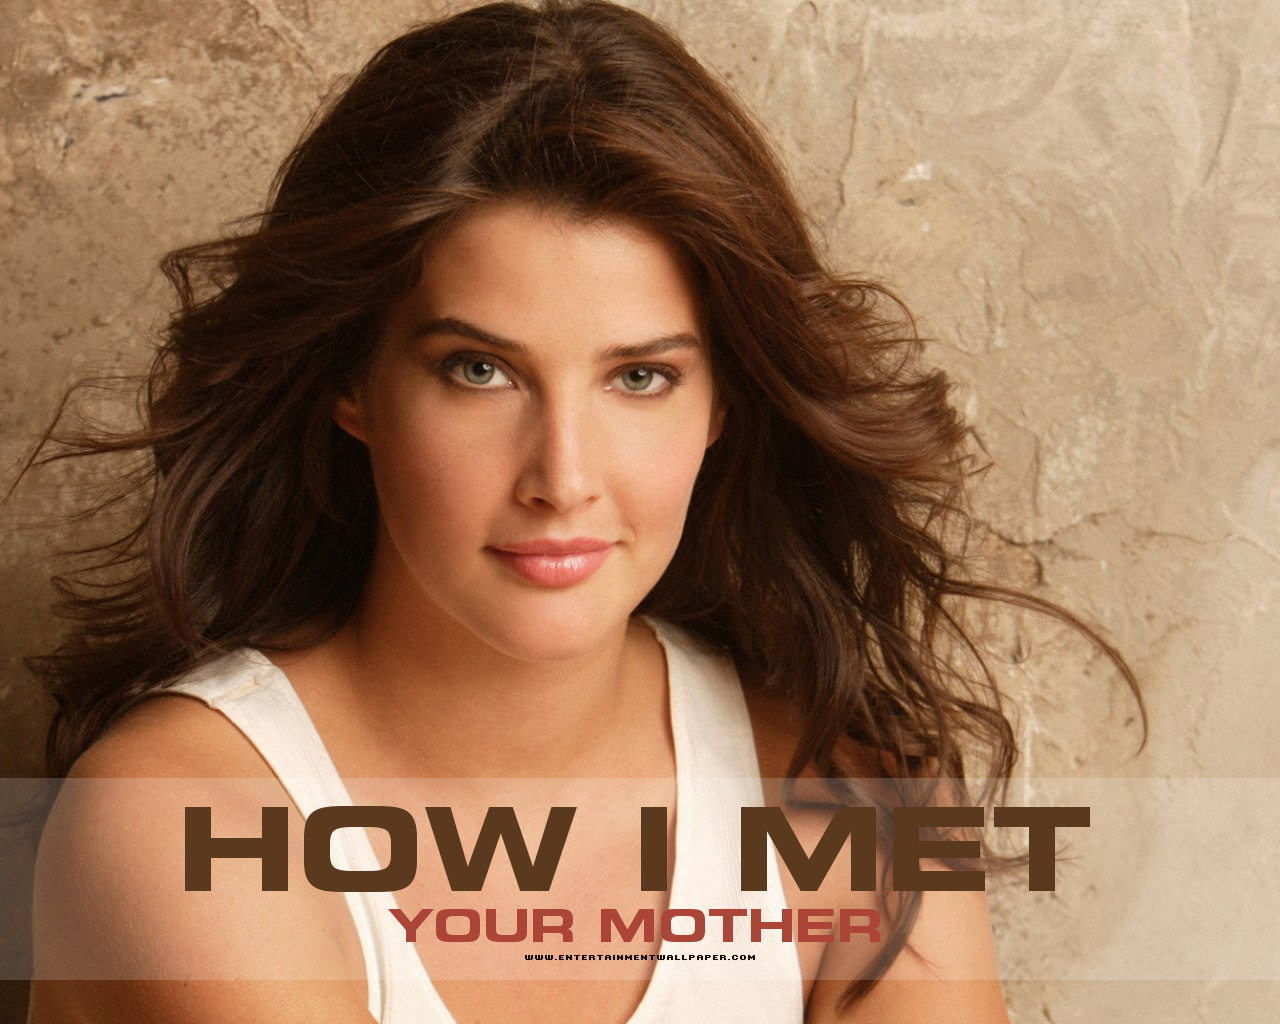 Robin How I Met Your Mother